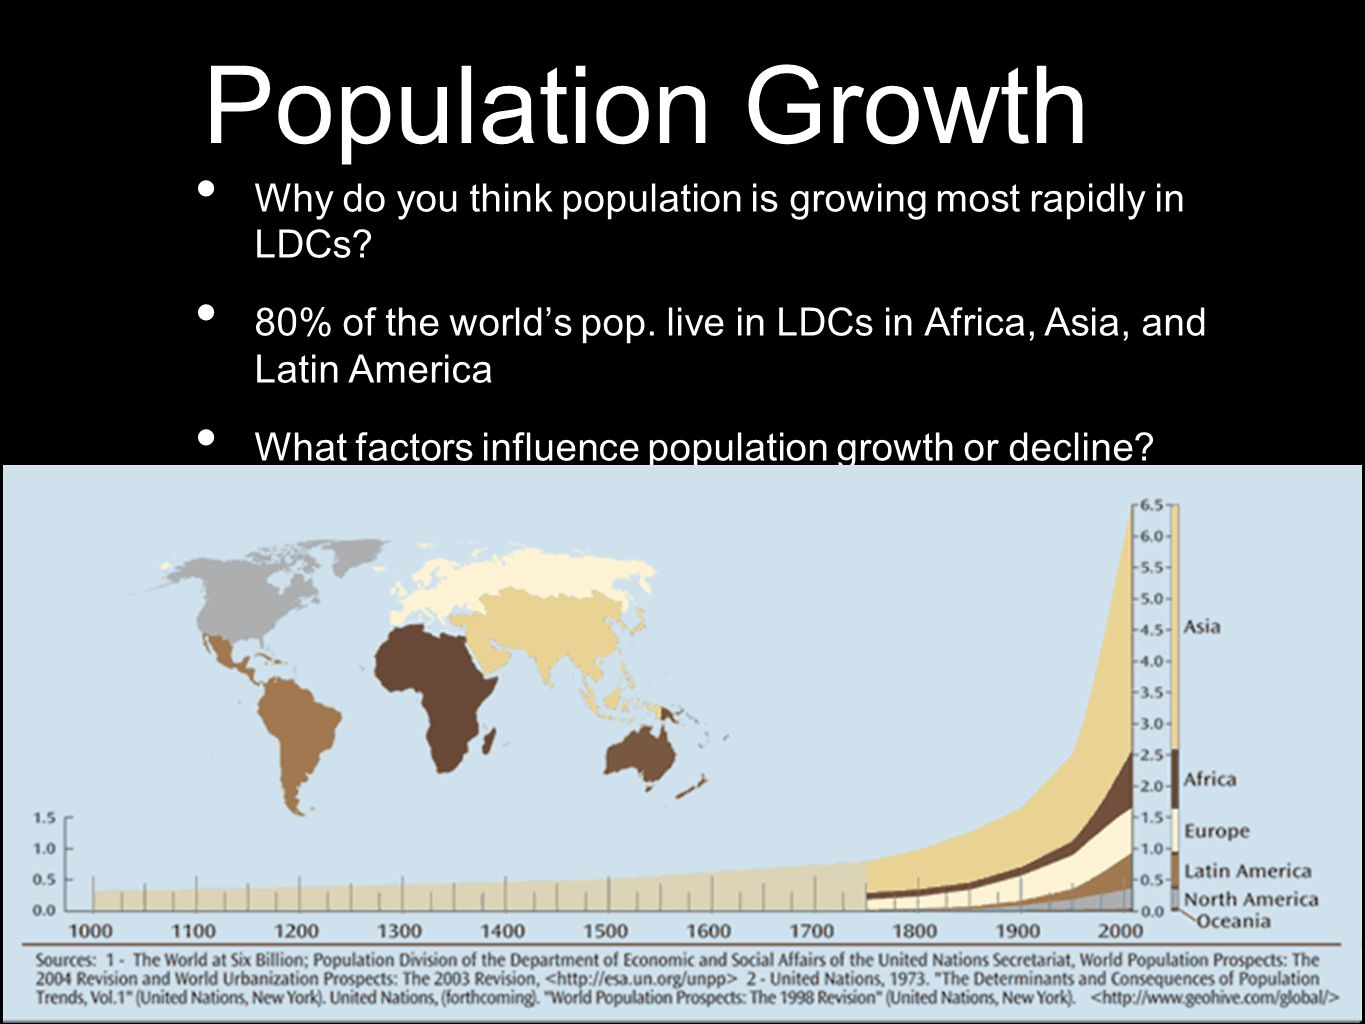 Population Growth Why do you think population is growing most rapidly in LDCs